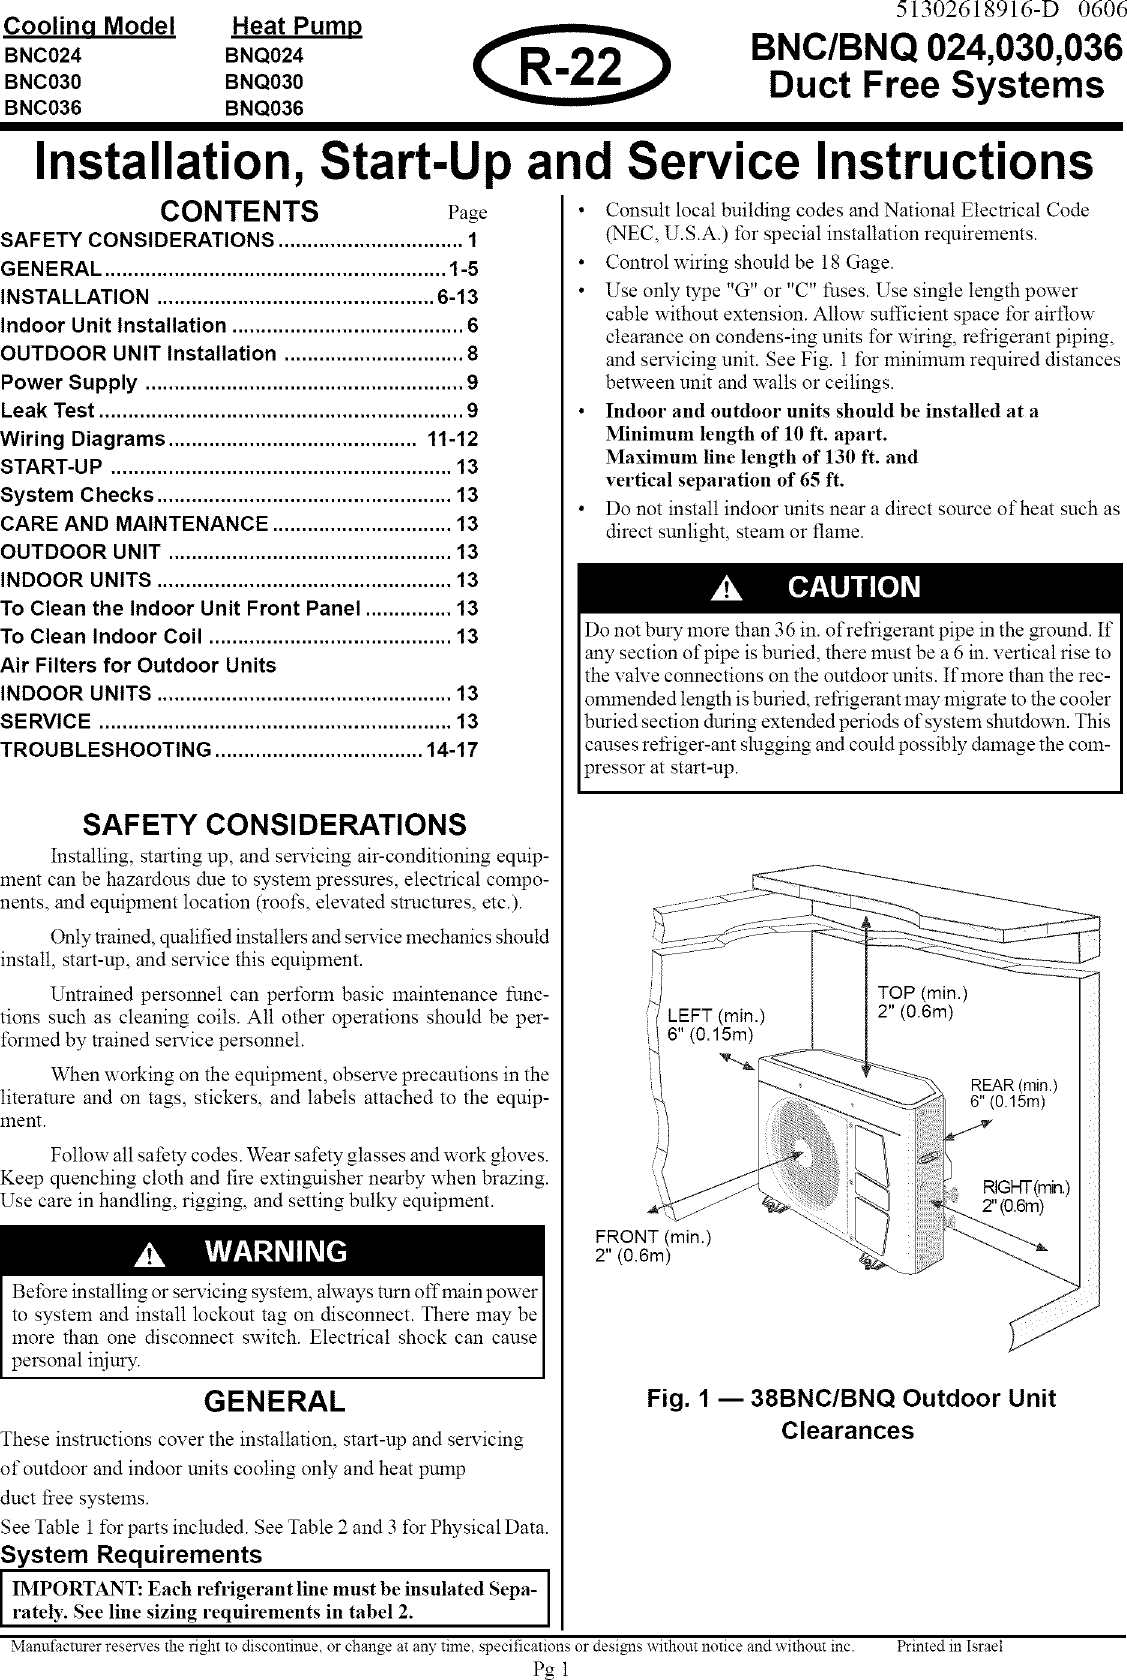 Carrier Air Conditioner Heat Pumpoutside Unit Manual L0611352 Wiring Diagram Of Refrigeration System